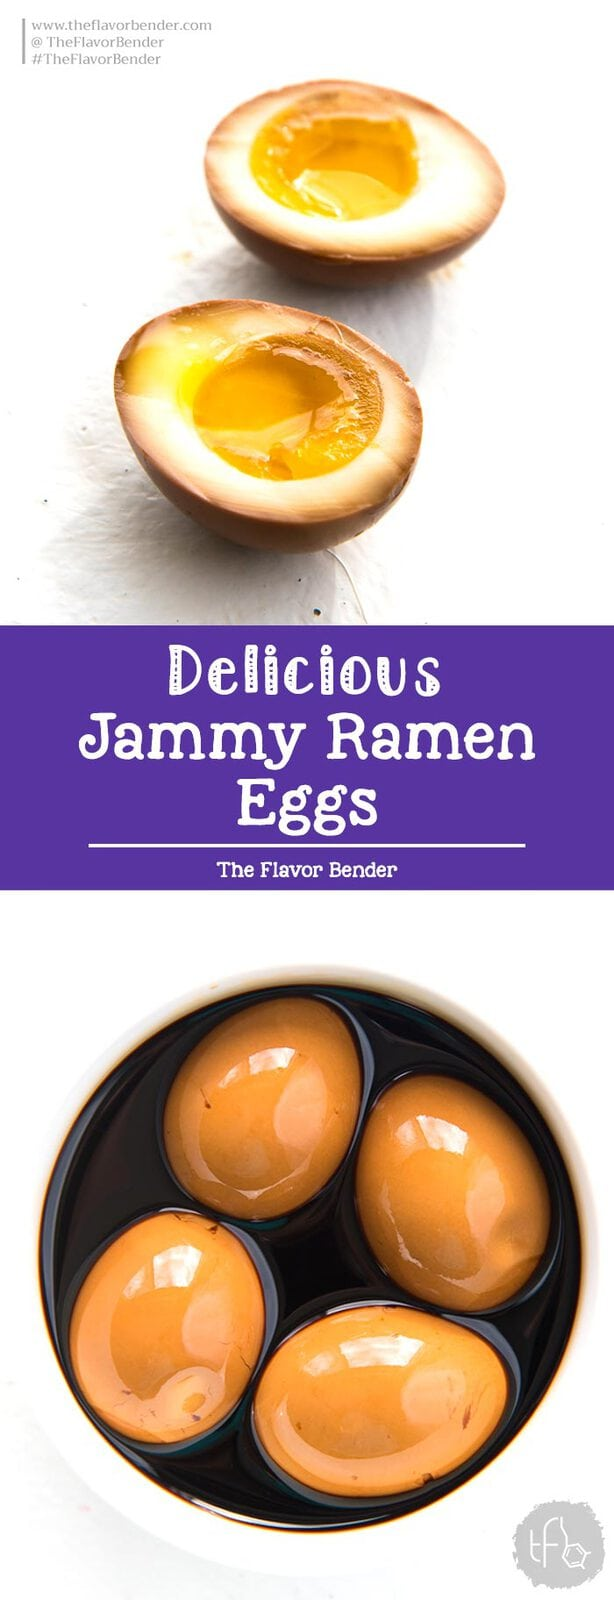 Jammy Ramen Eggs (Ajitsuke Tamago) - These are sweet, salty and rich with plenty of umami flavor. Plus they are super easy to make and an essential part of an authentic Ramen bowl. #RamenEggs #Ramen #SoftboiledEggs #PickledEggs #Snacks